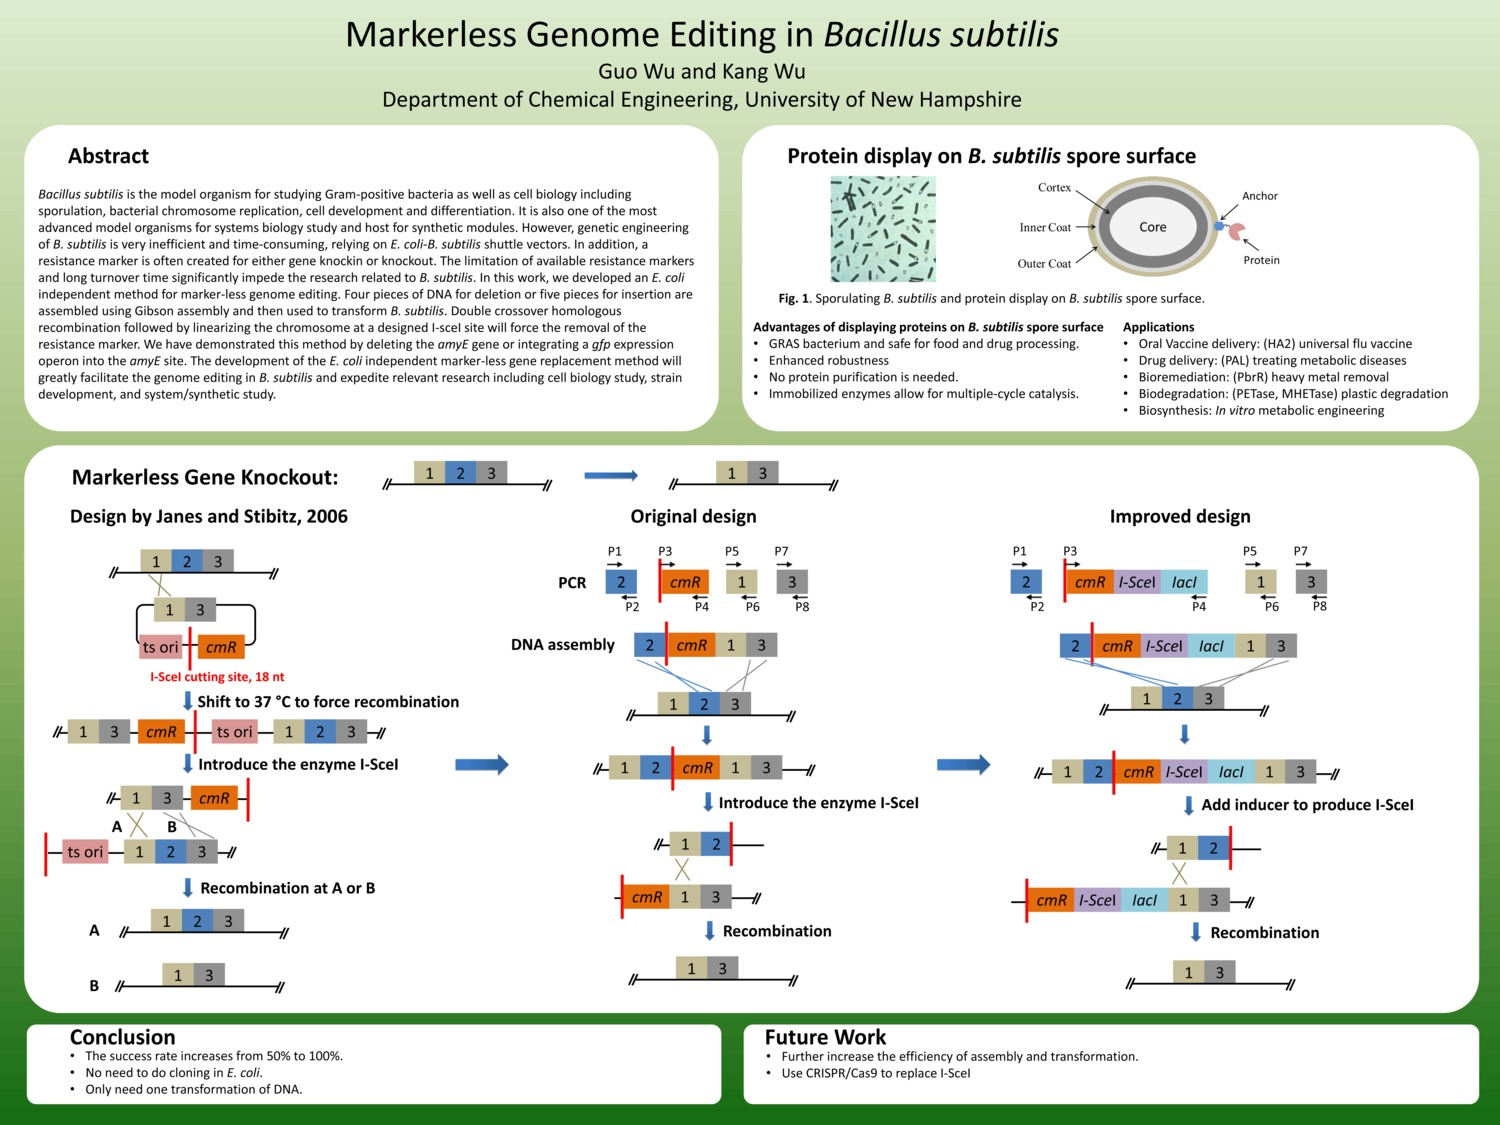 Markerless Genome Editing In Bacillus Subtilis by kangwu